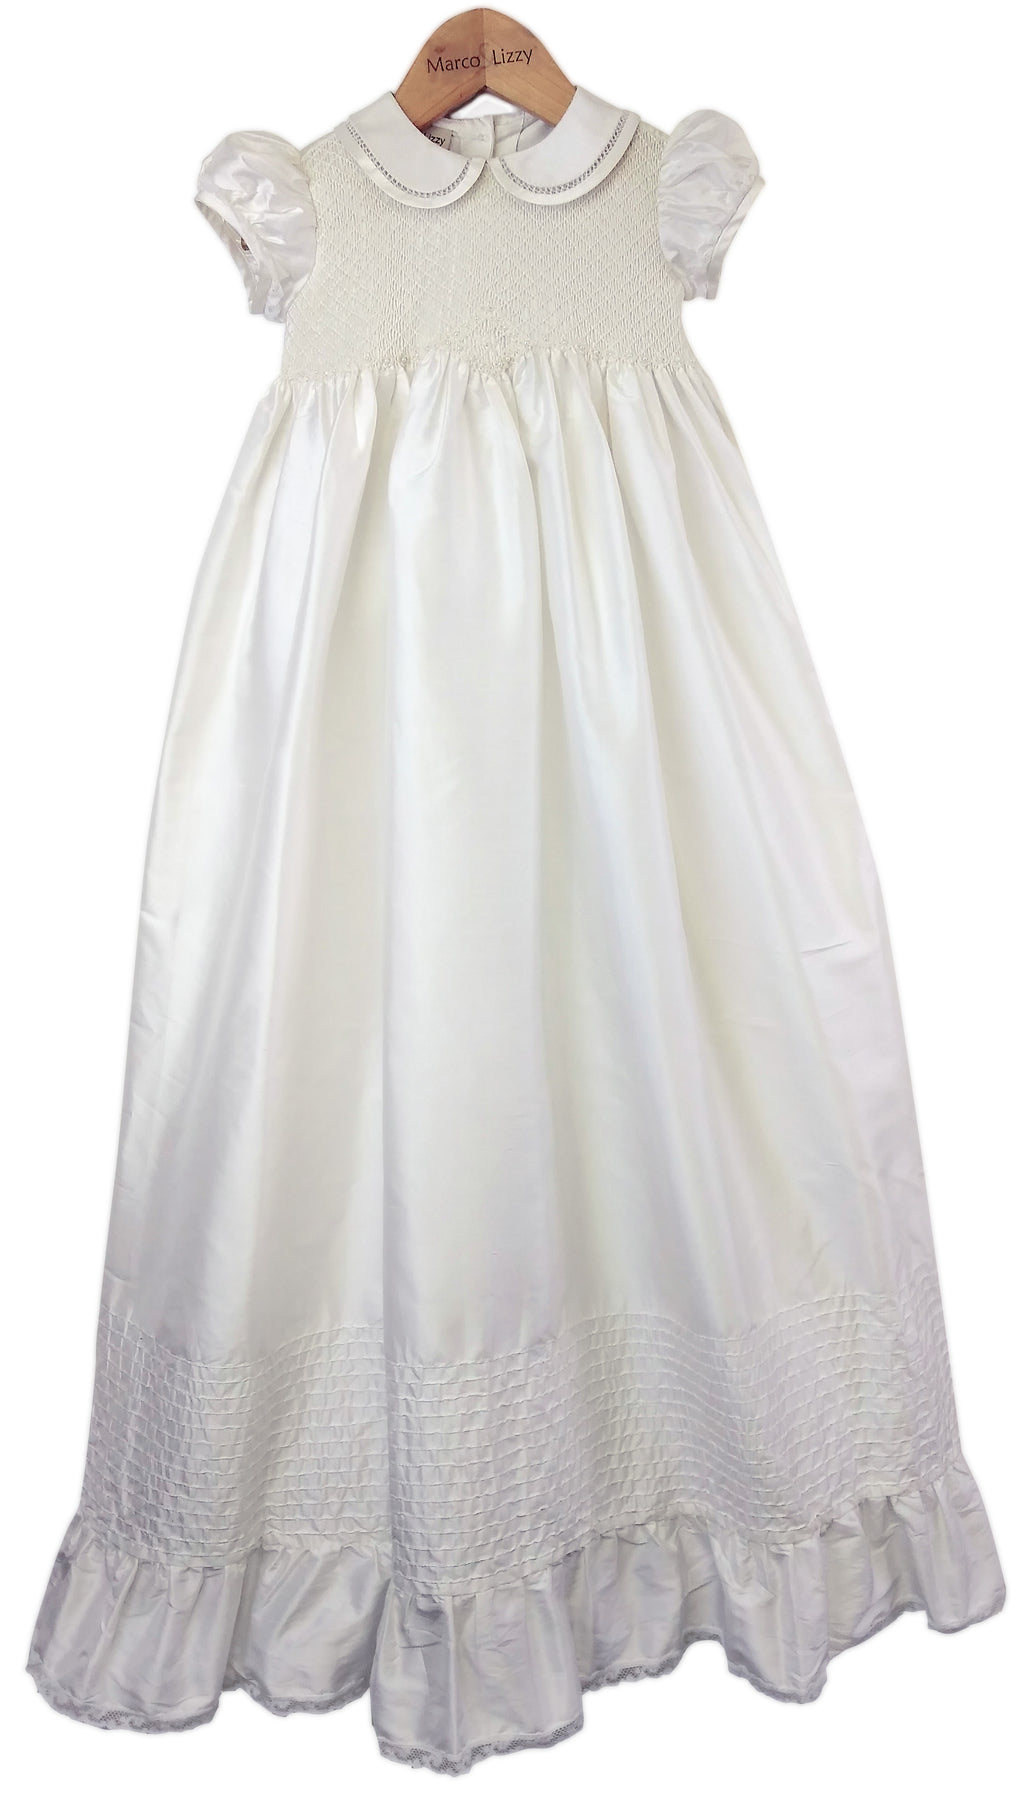 Silk Hand Smocked Christening gown - Little Threads Inc. Children's Clothing